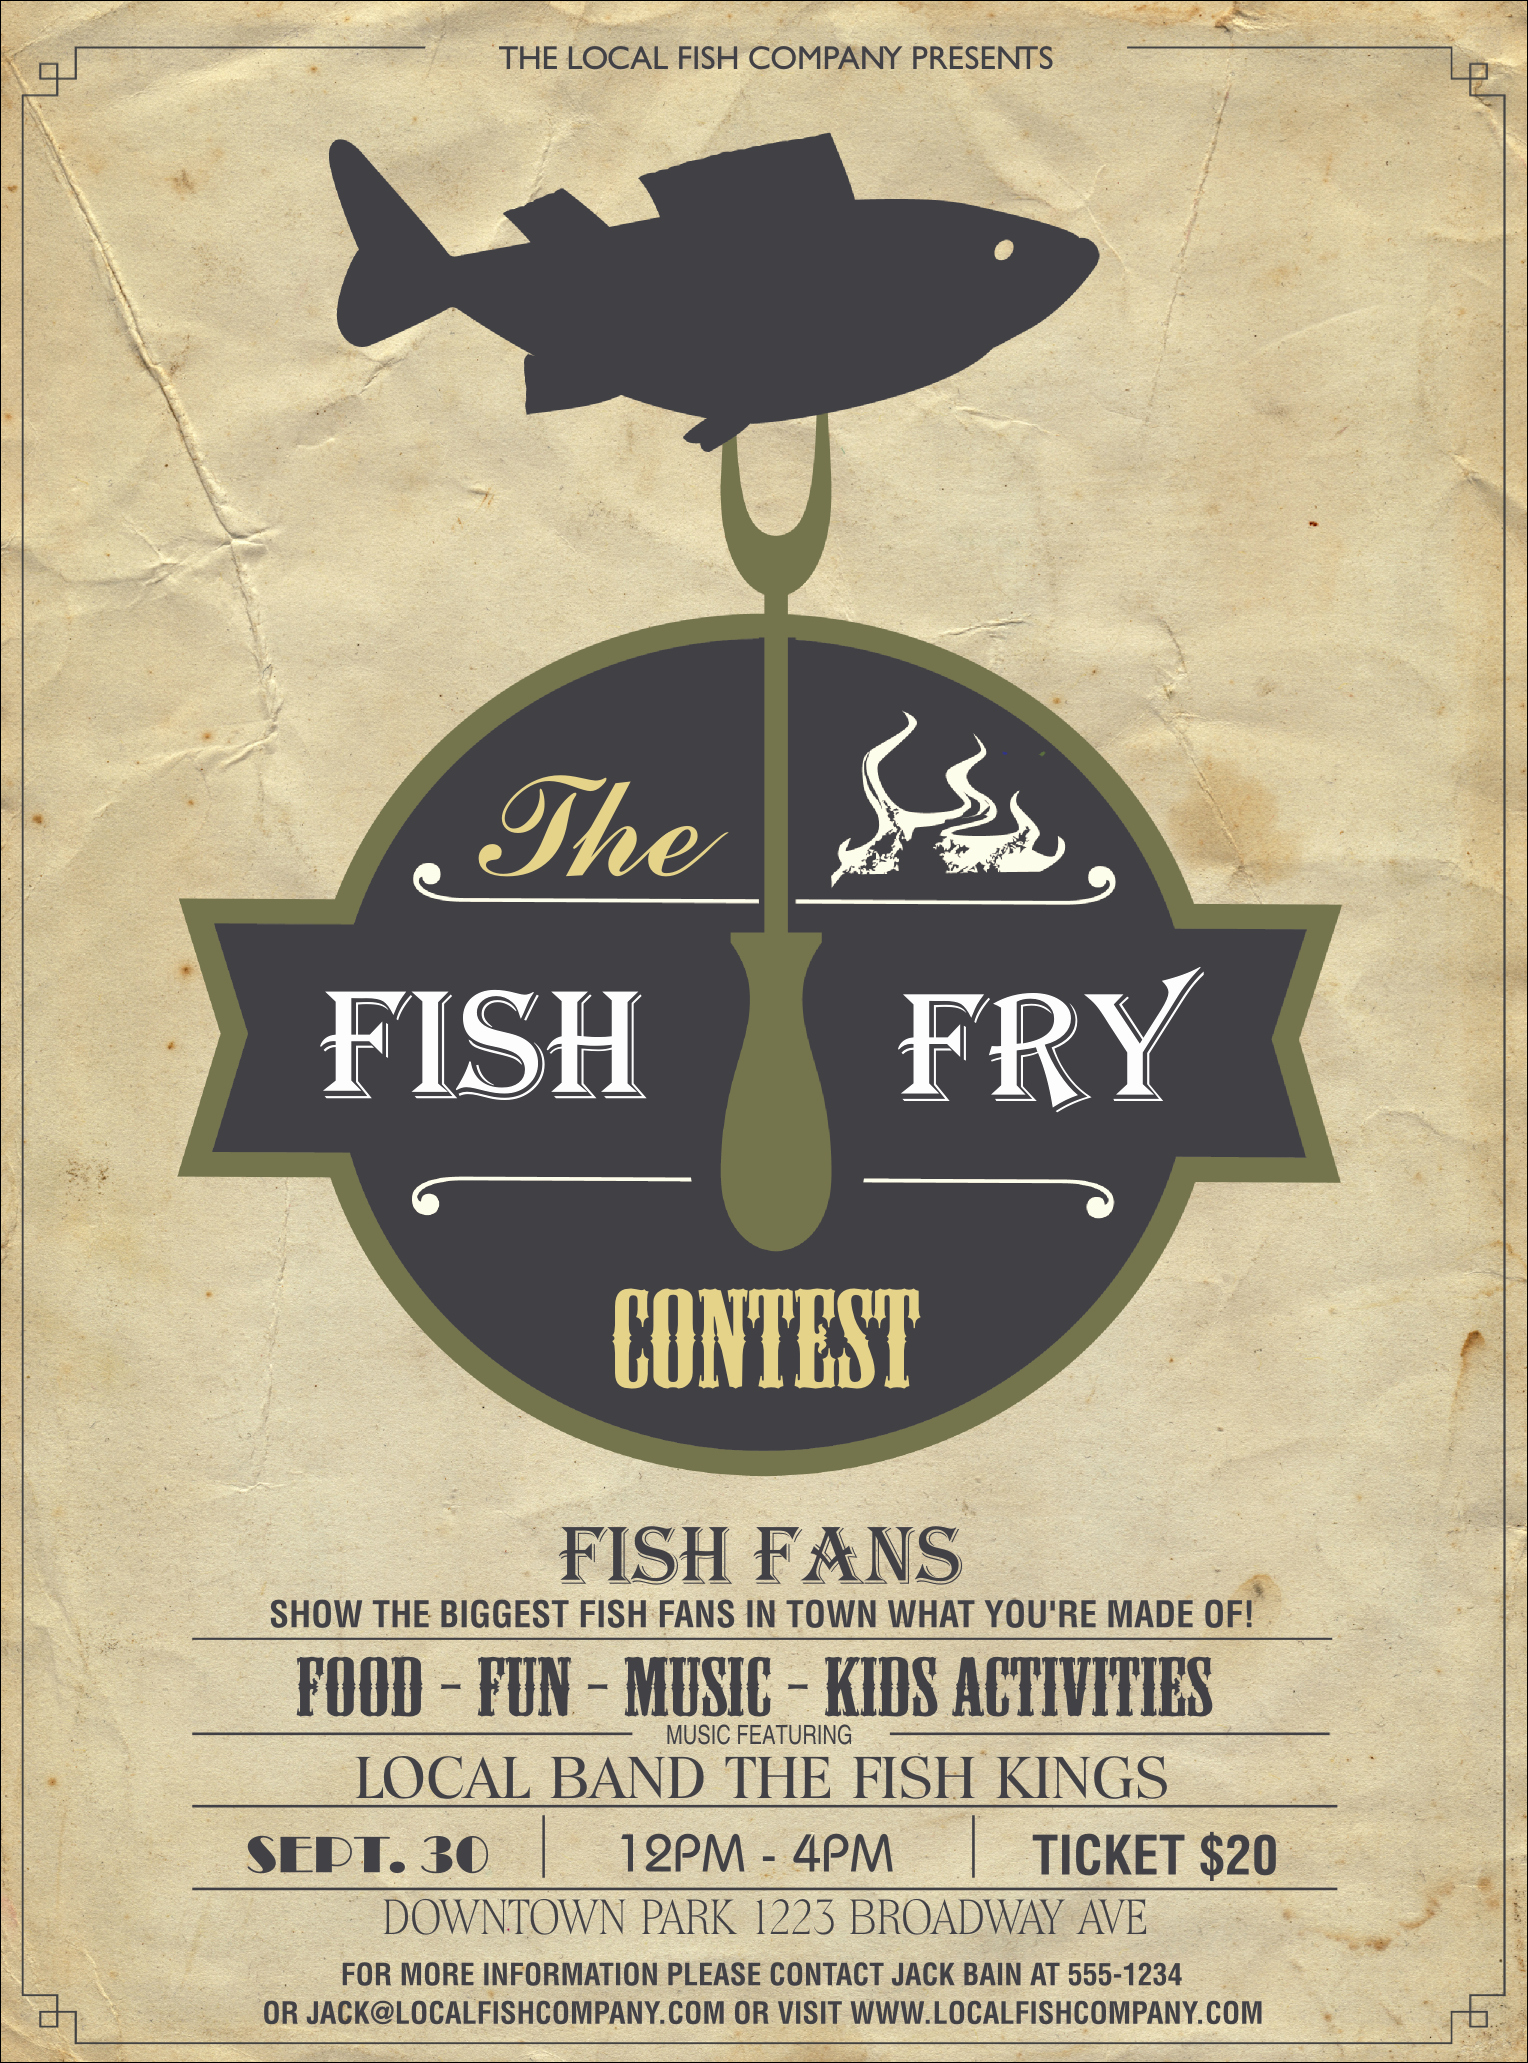 Free Fish Fry Flyer Templates Luxury Fish Fry Flyer